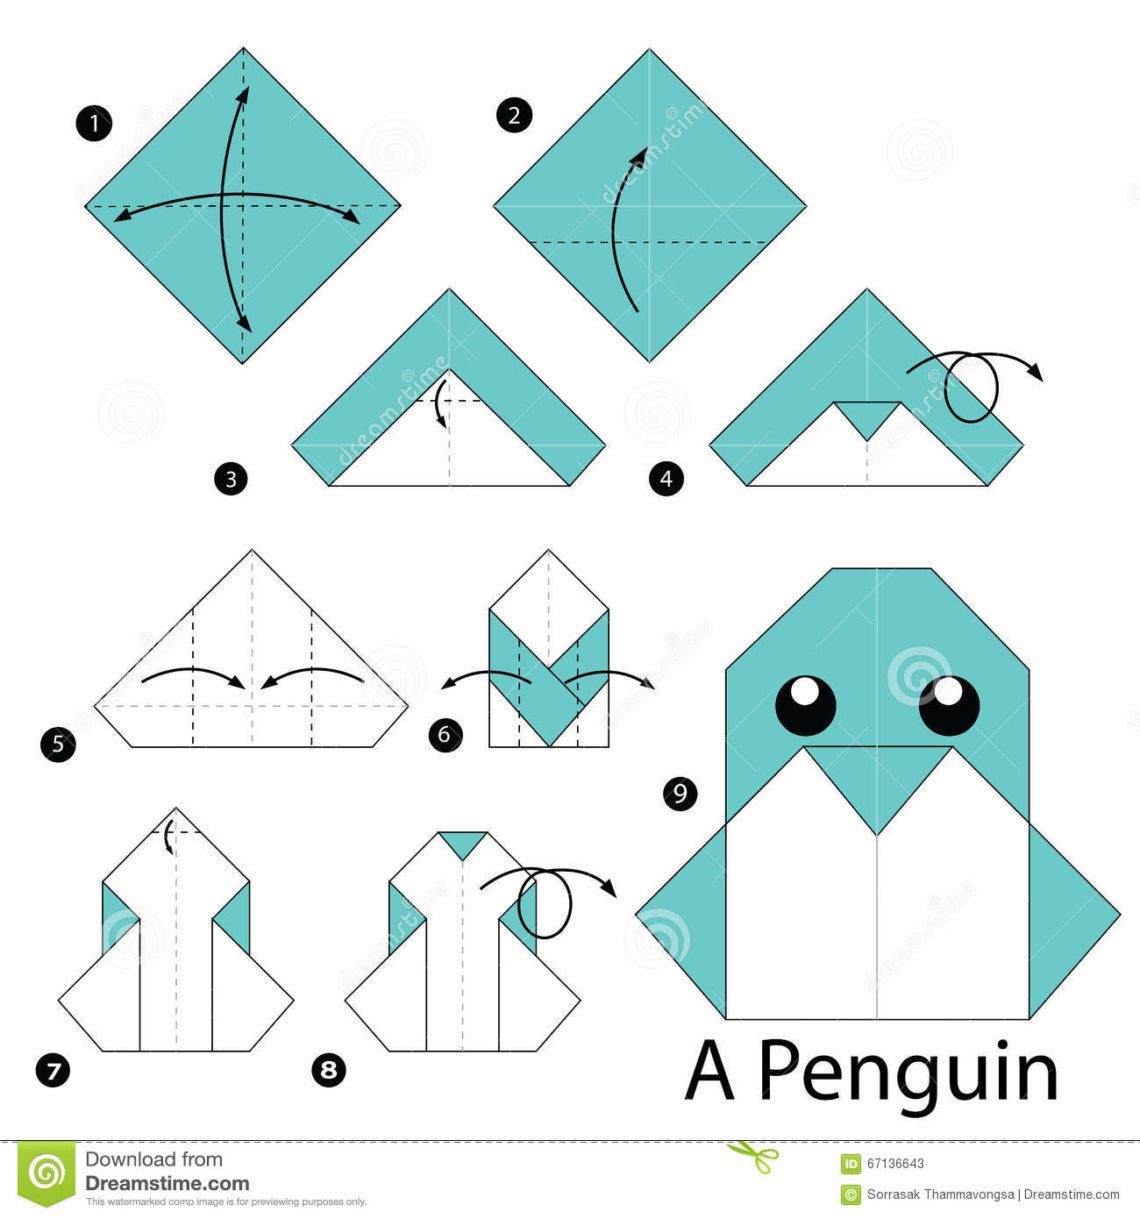 27 Beautiful Photo Of Origami For Beginners Step By Step Easy Origami For Beginners Step By Step Easy Easy Origami Animals Origami Diagrams Origami Patterns